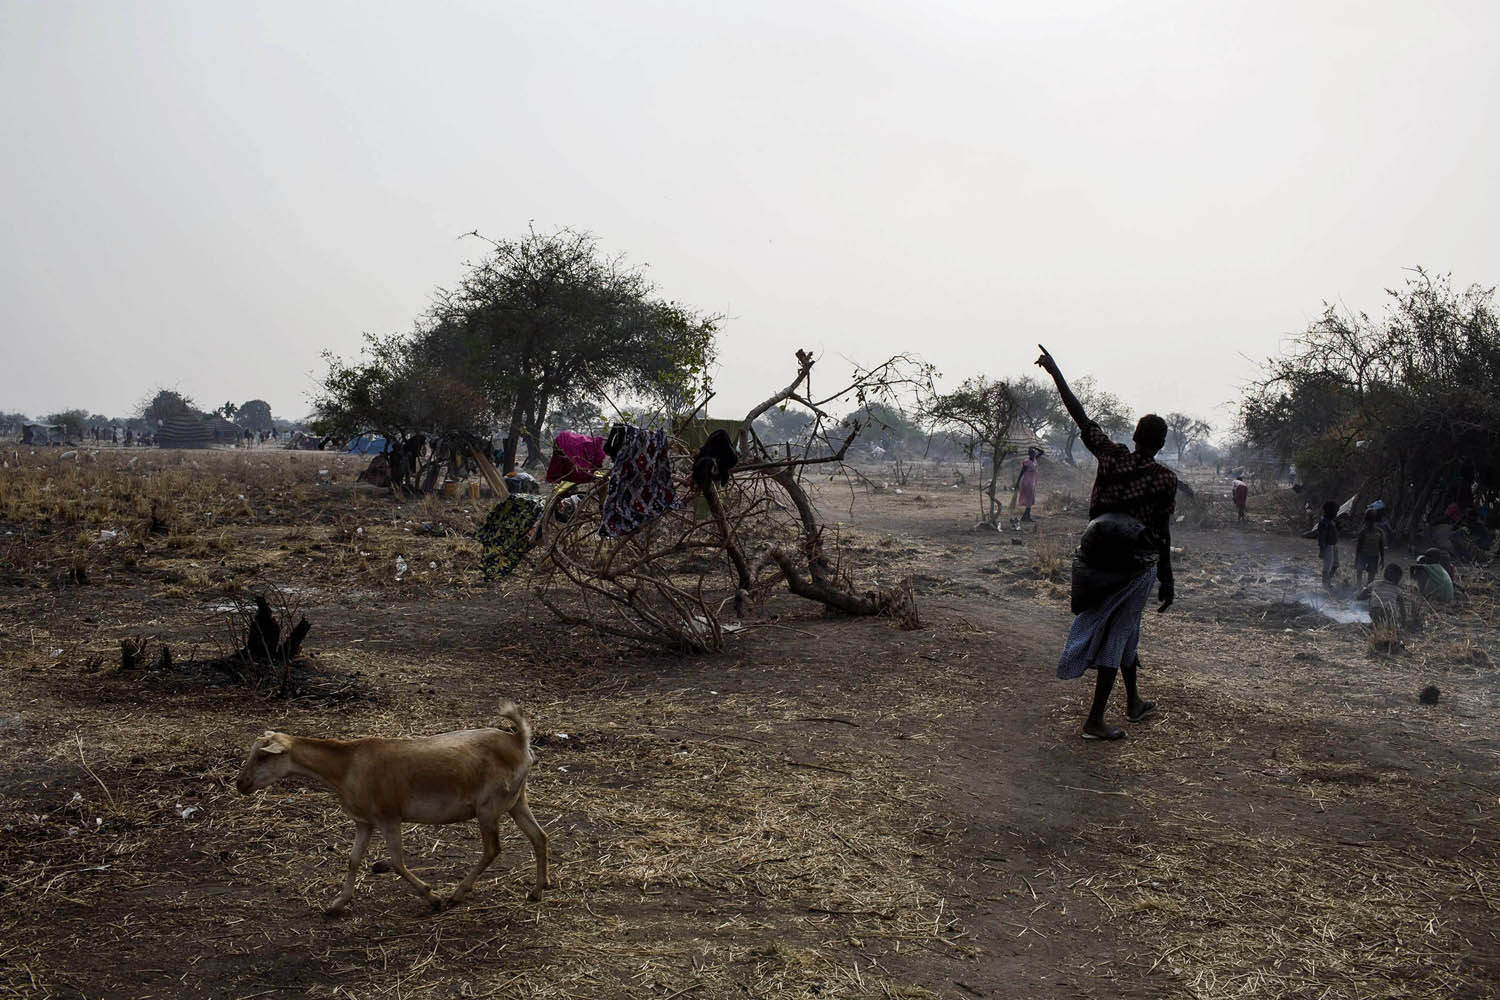 Feb. 7, 2014. A South Sudanese Internally Displaced Person (IDP) walks in the temporary camp in Mingkaman, South Sudan.